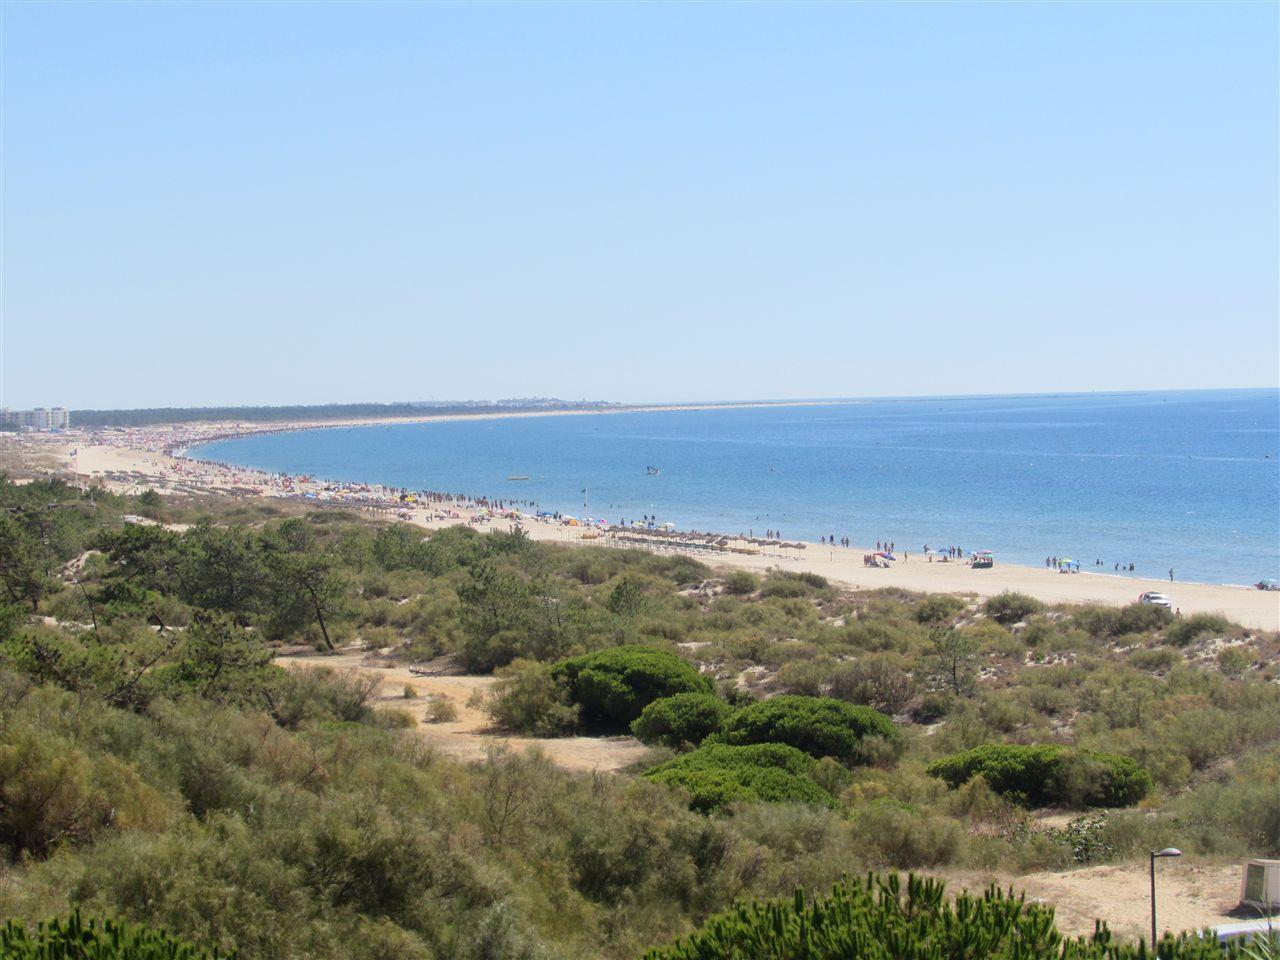 Land for Sale at Real estate land for Sale Castro Marim, Algarve Portugal